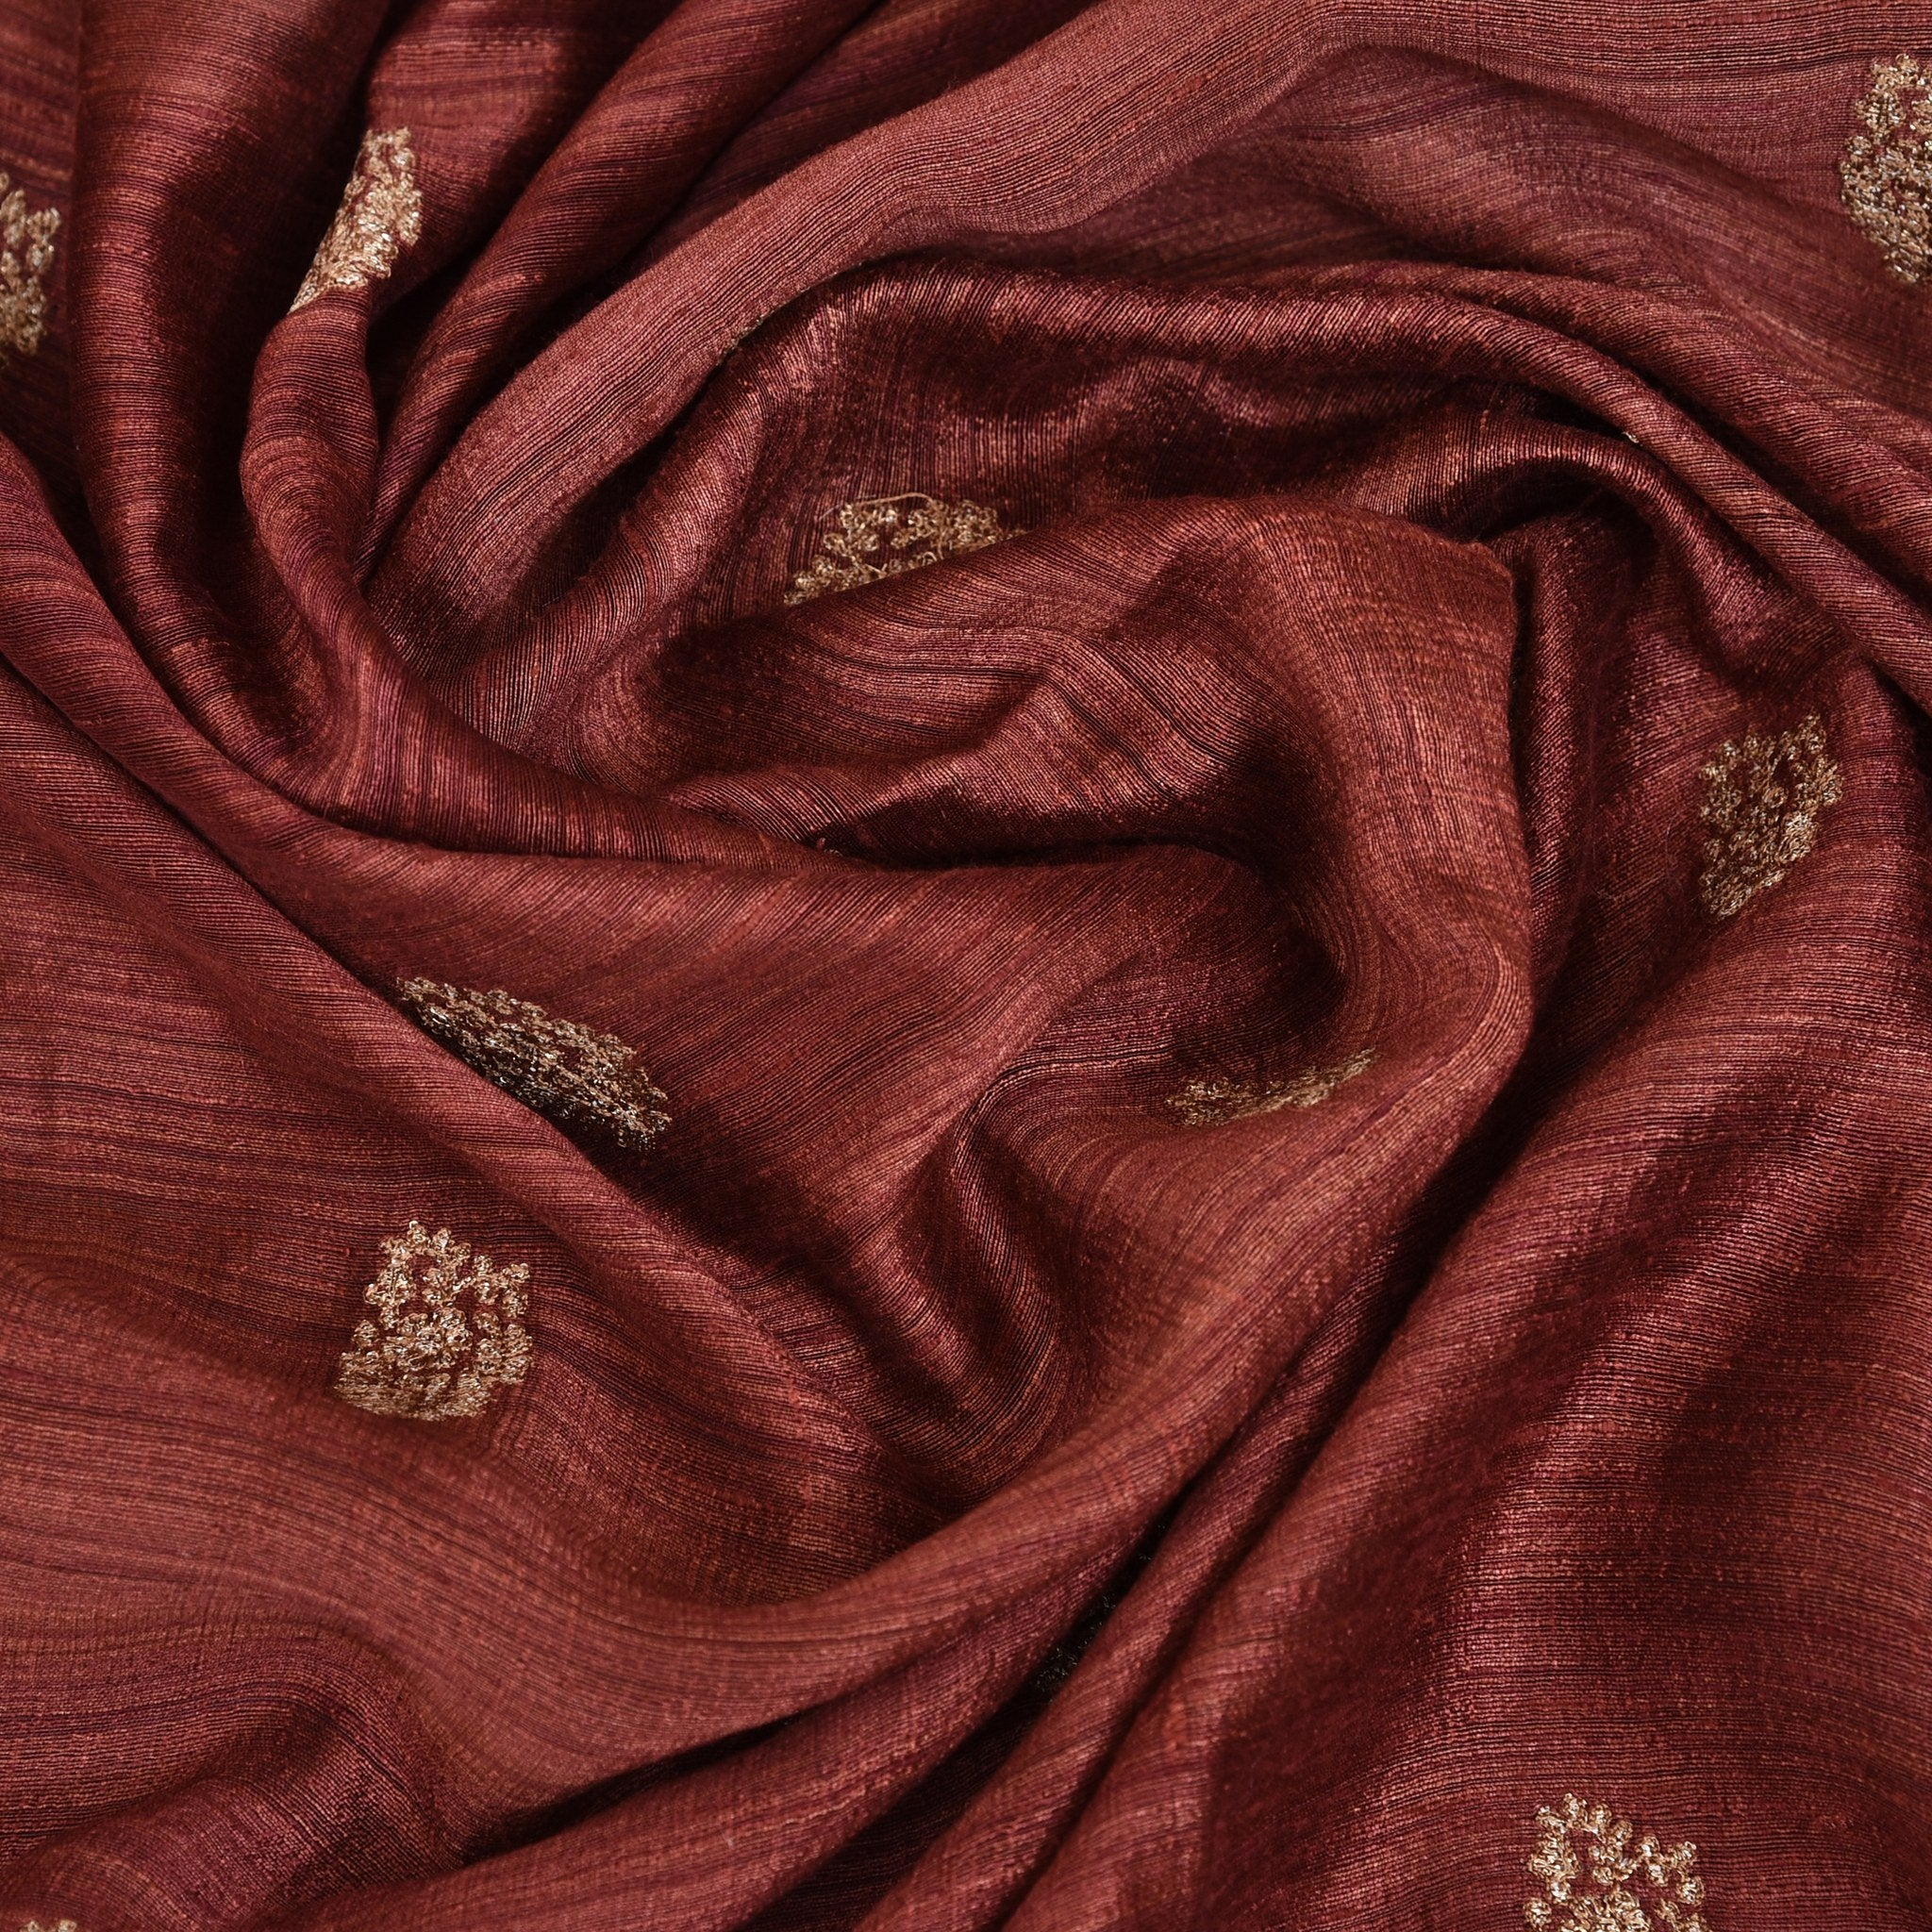 Cinnamon-Brown-Tussar-Embroidered-Blouse-Fabric